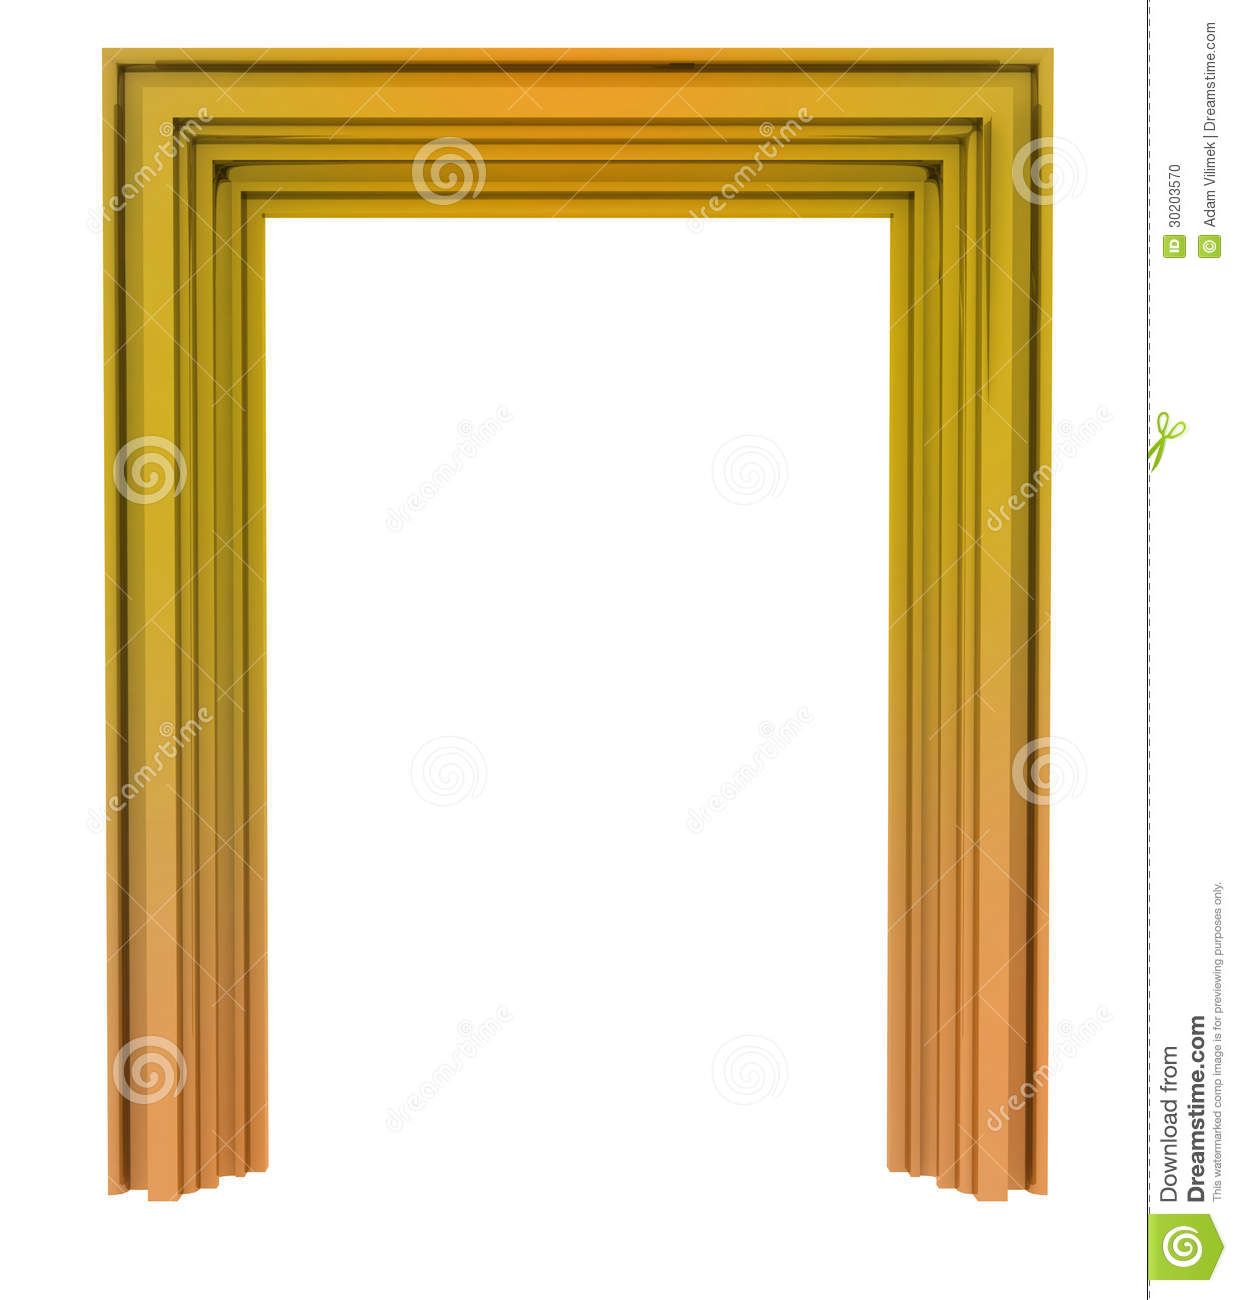 Door Frame Decoration isolated golden decorative door frame stock photo - image: 30203570